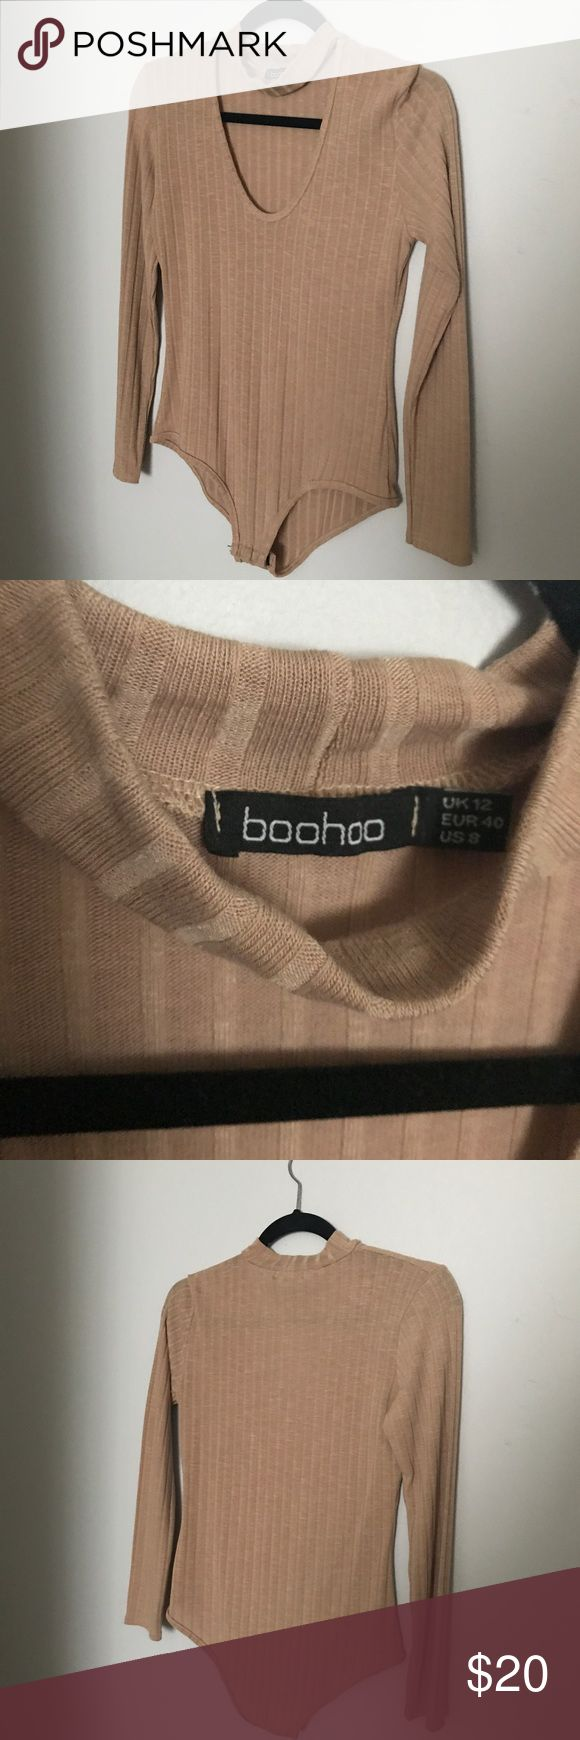 Boohoo Camel Choker Bodysuit Brand new without tags! Ribbed camel/nude colored Bodysuit from Boohoo with Choker neckline (long sleeve) size: 8 (fits like a Medium!) Boohoo Tops